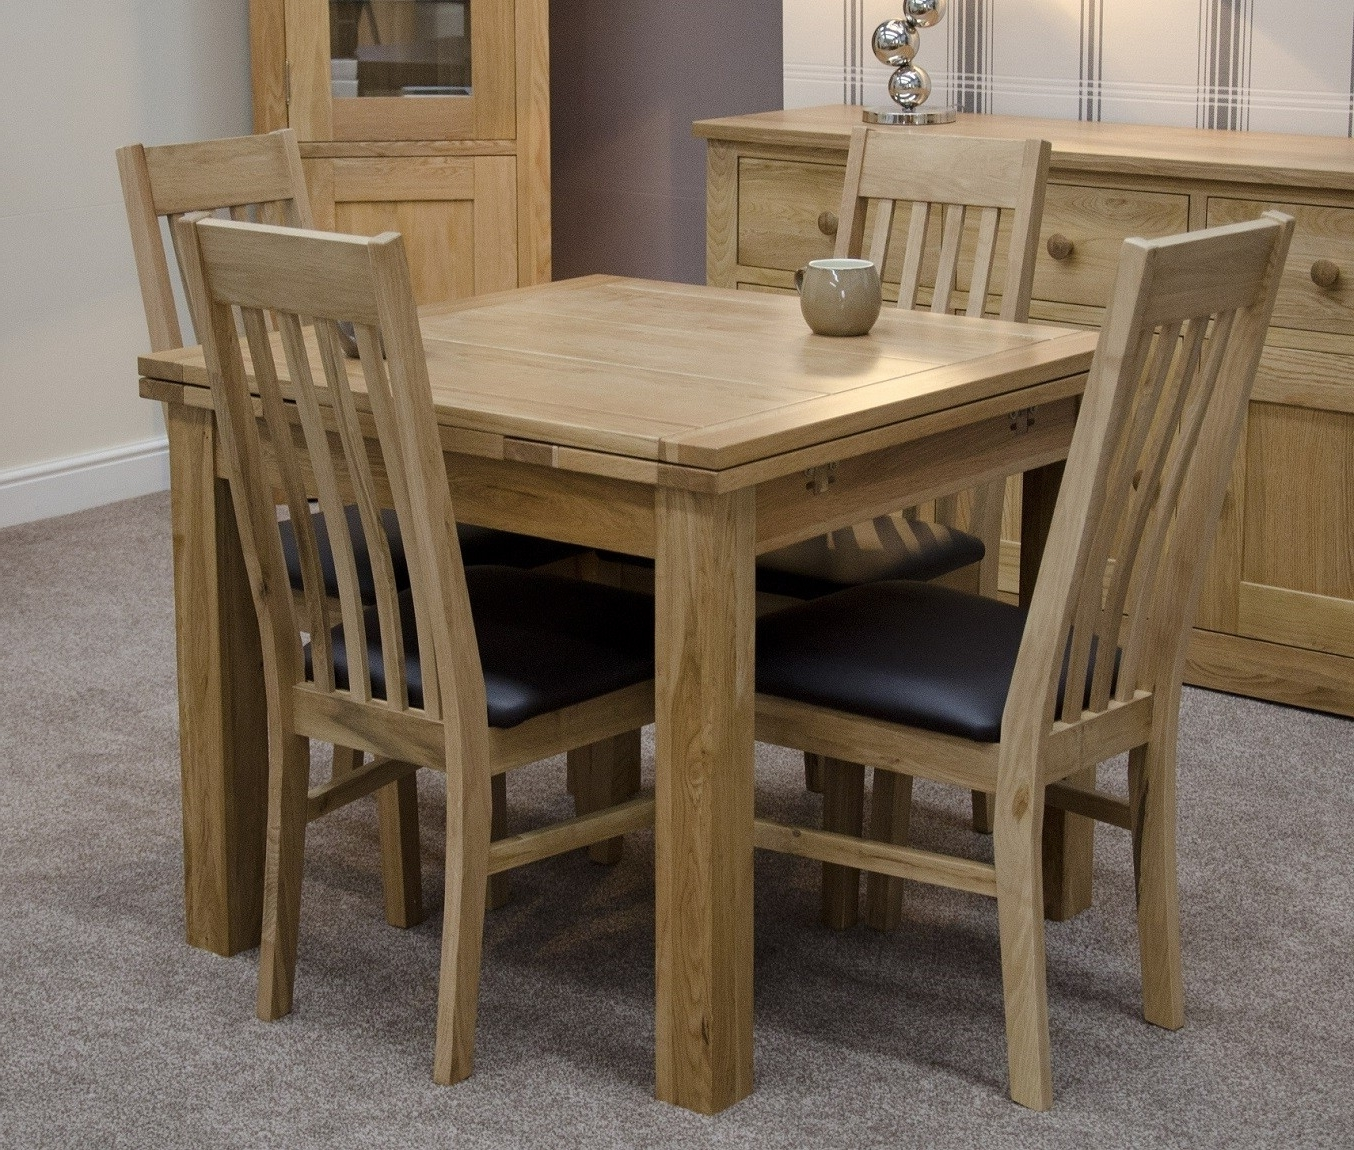 Oak Furniture Uk With Best And Newest Extending Solid Oak Dining Tables (View 16 of 25)